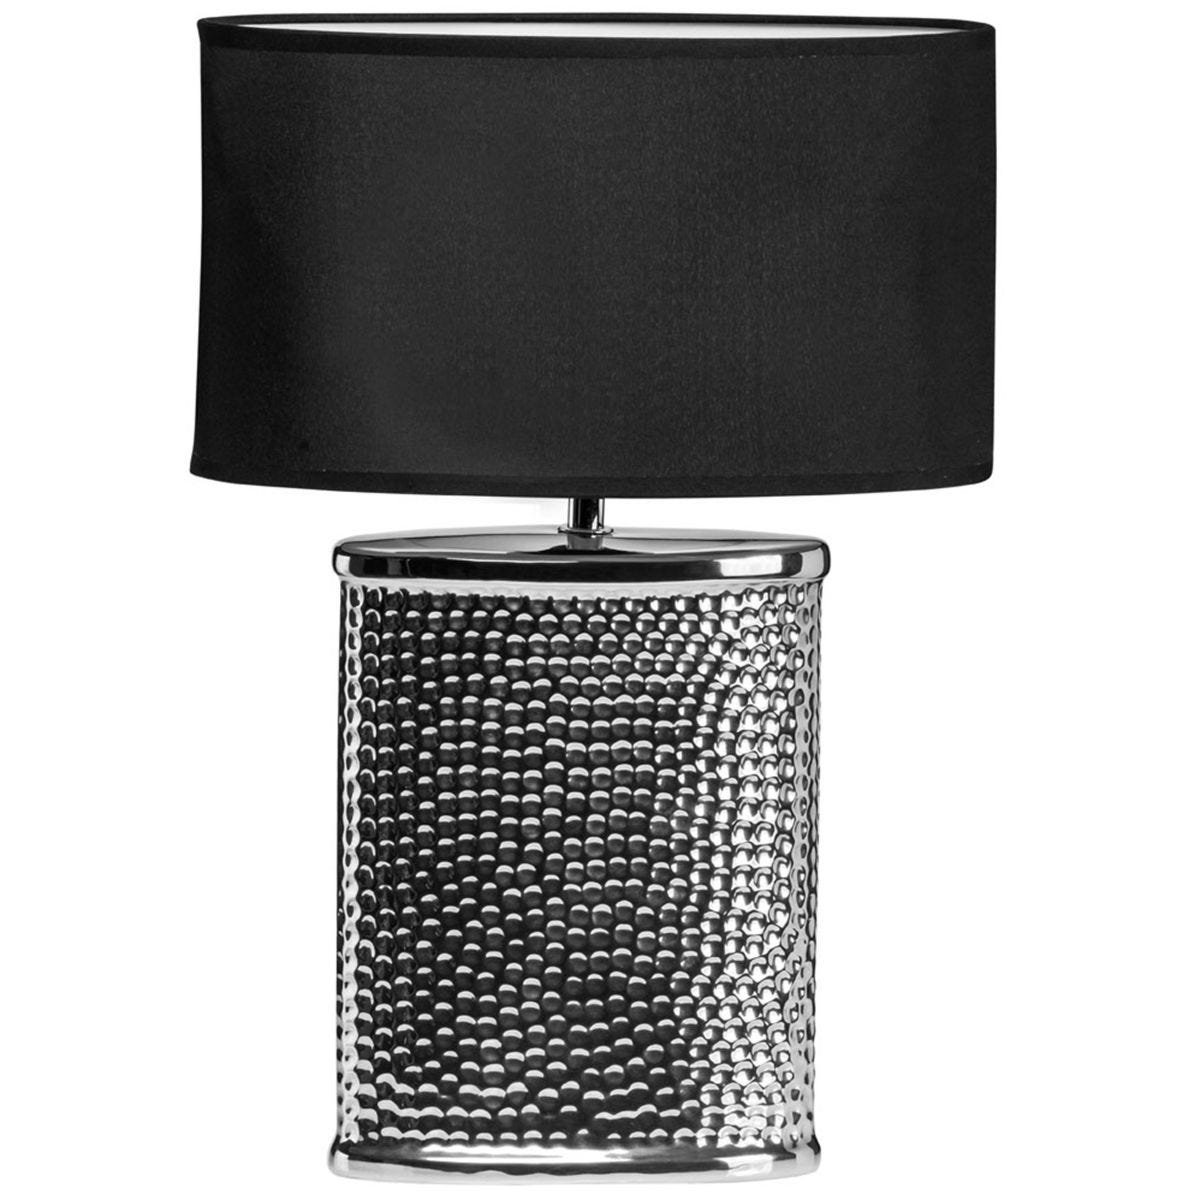 Premier Housewares Regents Park Table Lamp in Hammered Chrome Effect Finish with Ceramic Base